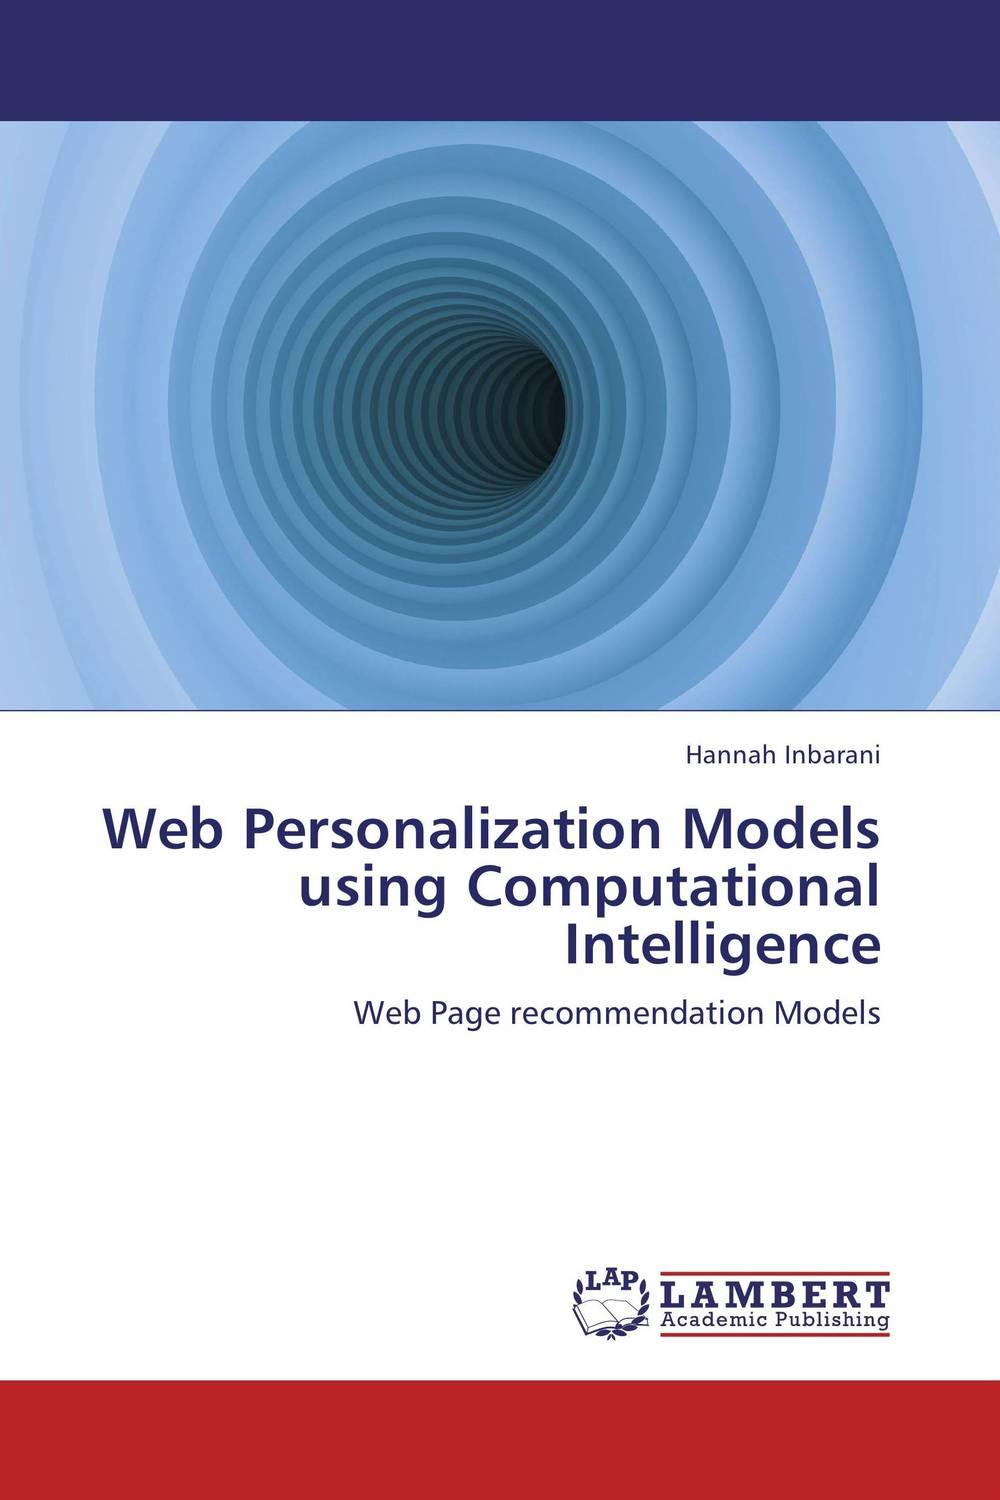 Web Personalization Models using Computational Intelligence clustering information entities based on statistical methods